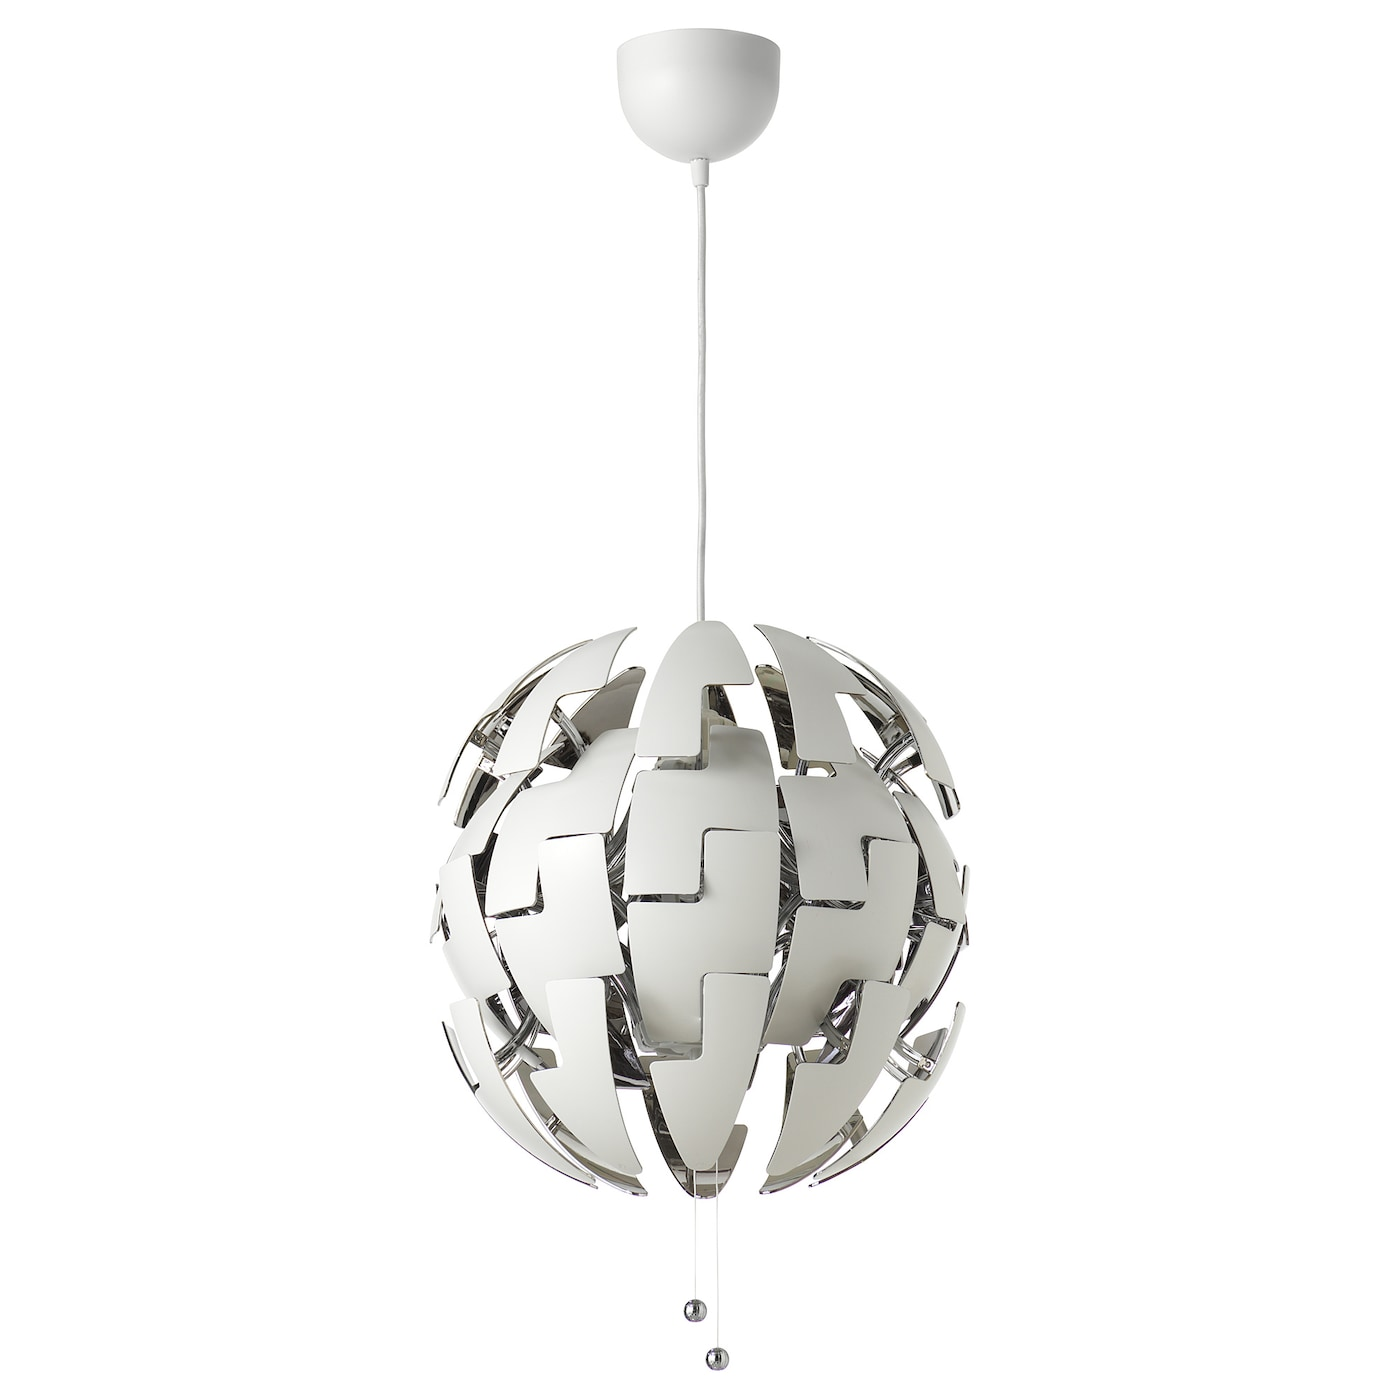 Ikea Ps 2017 Pendant Lamp White